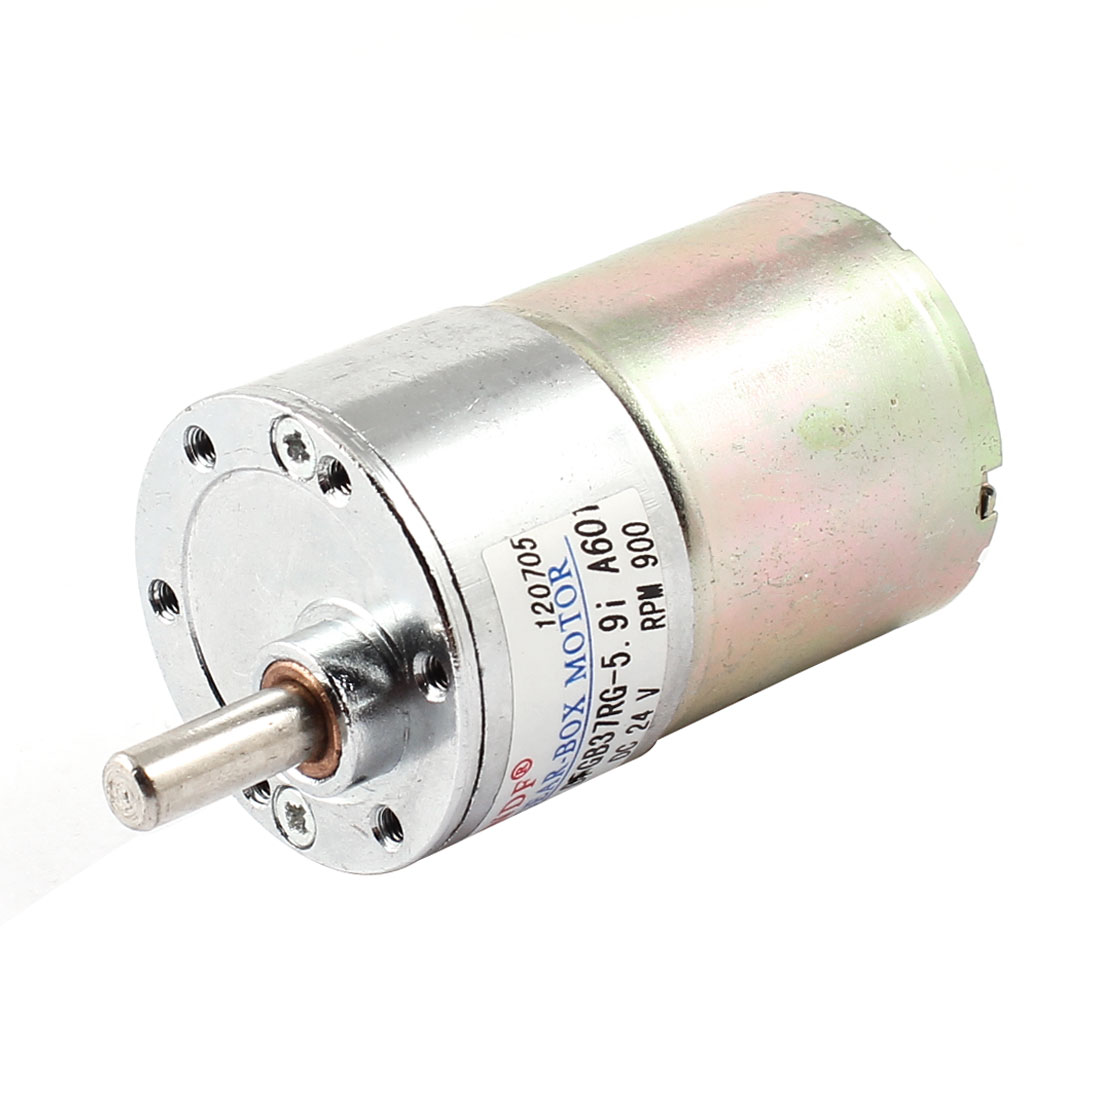 DC-24V-900RPM-2-Pin-Connector-Magnetic-Geared-Box-Speed-Reduce-Motor